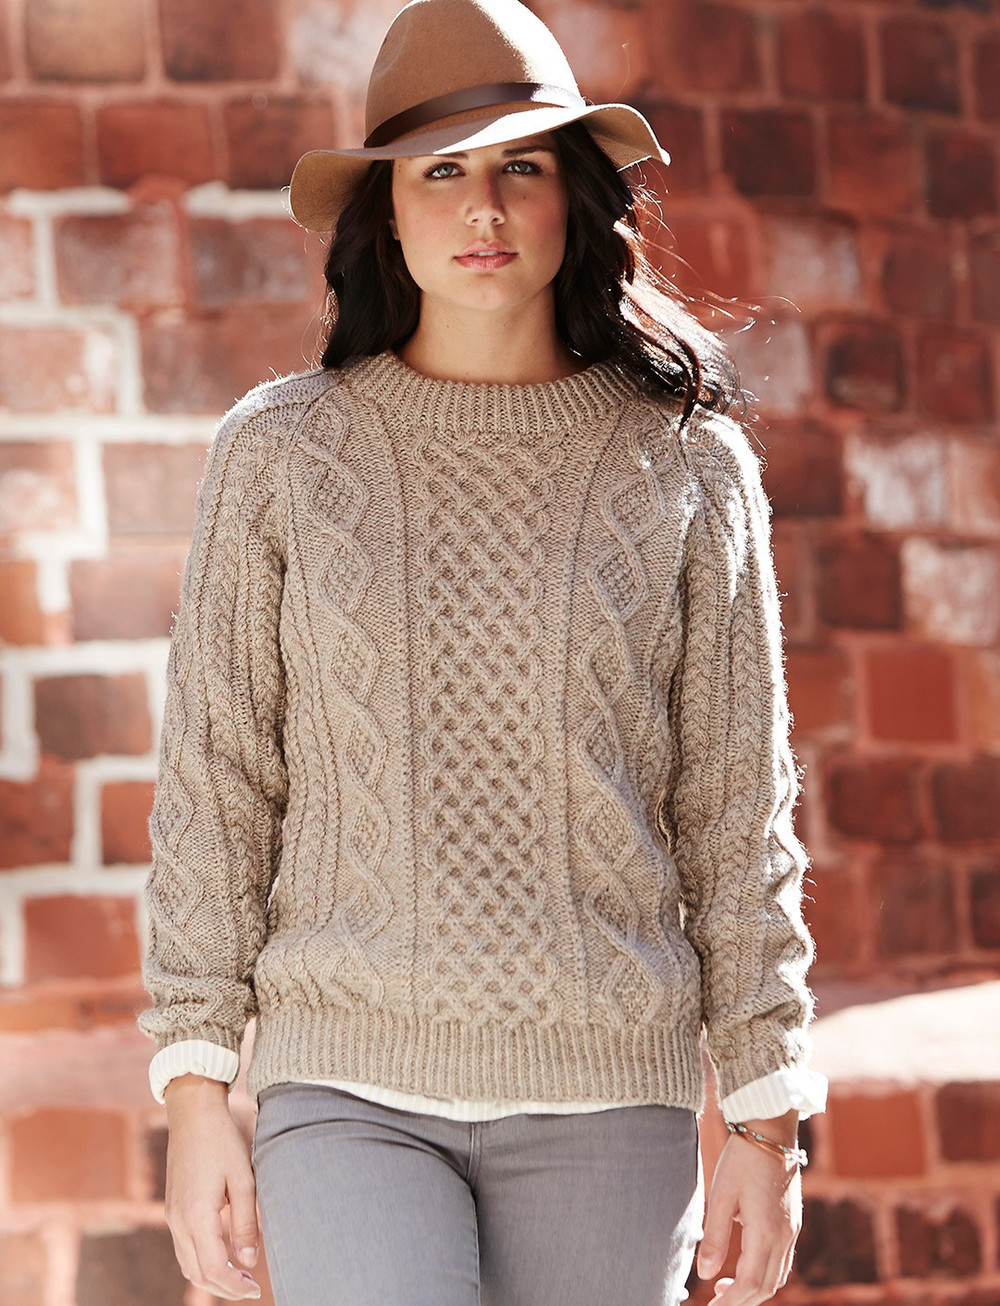 Oats and Honeycomb Cabled Pullover | AllFreeKnitting.com